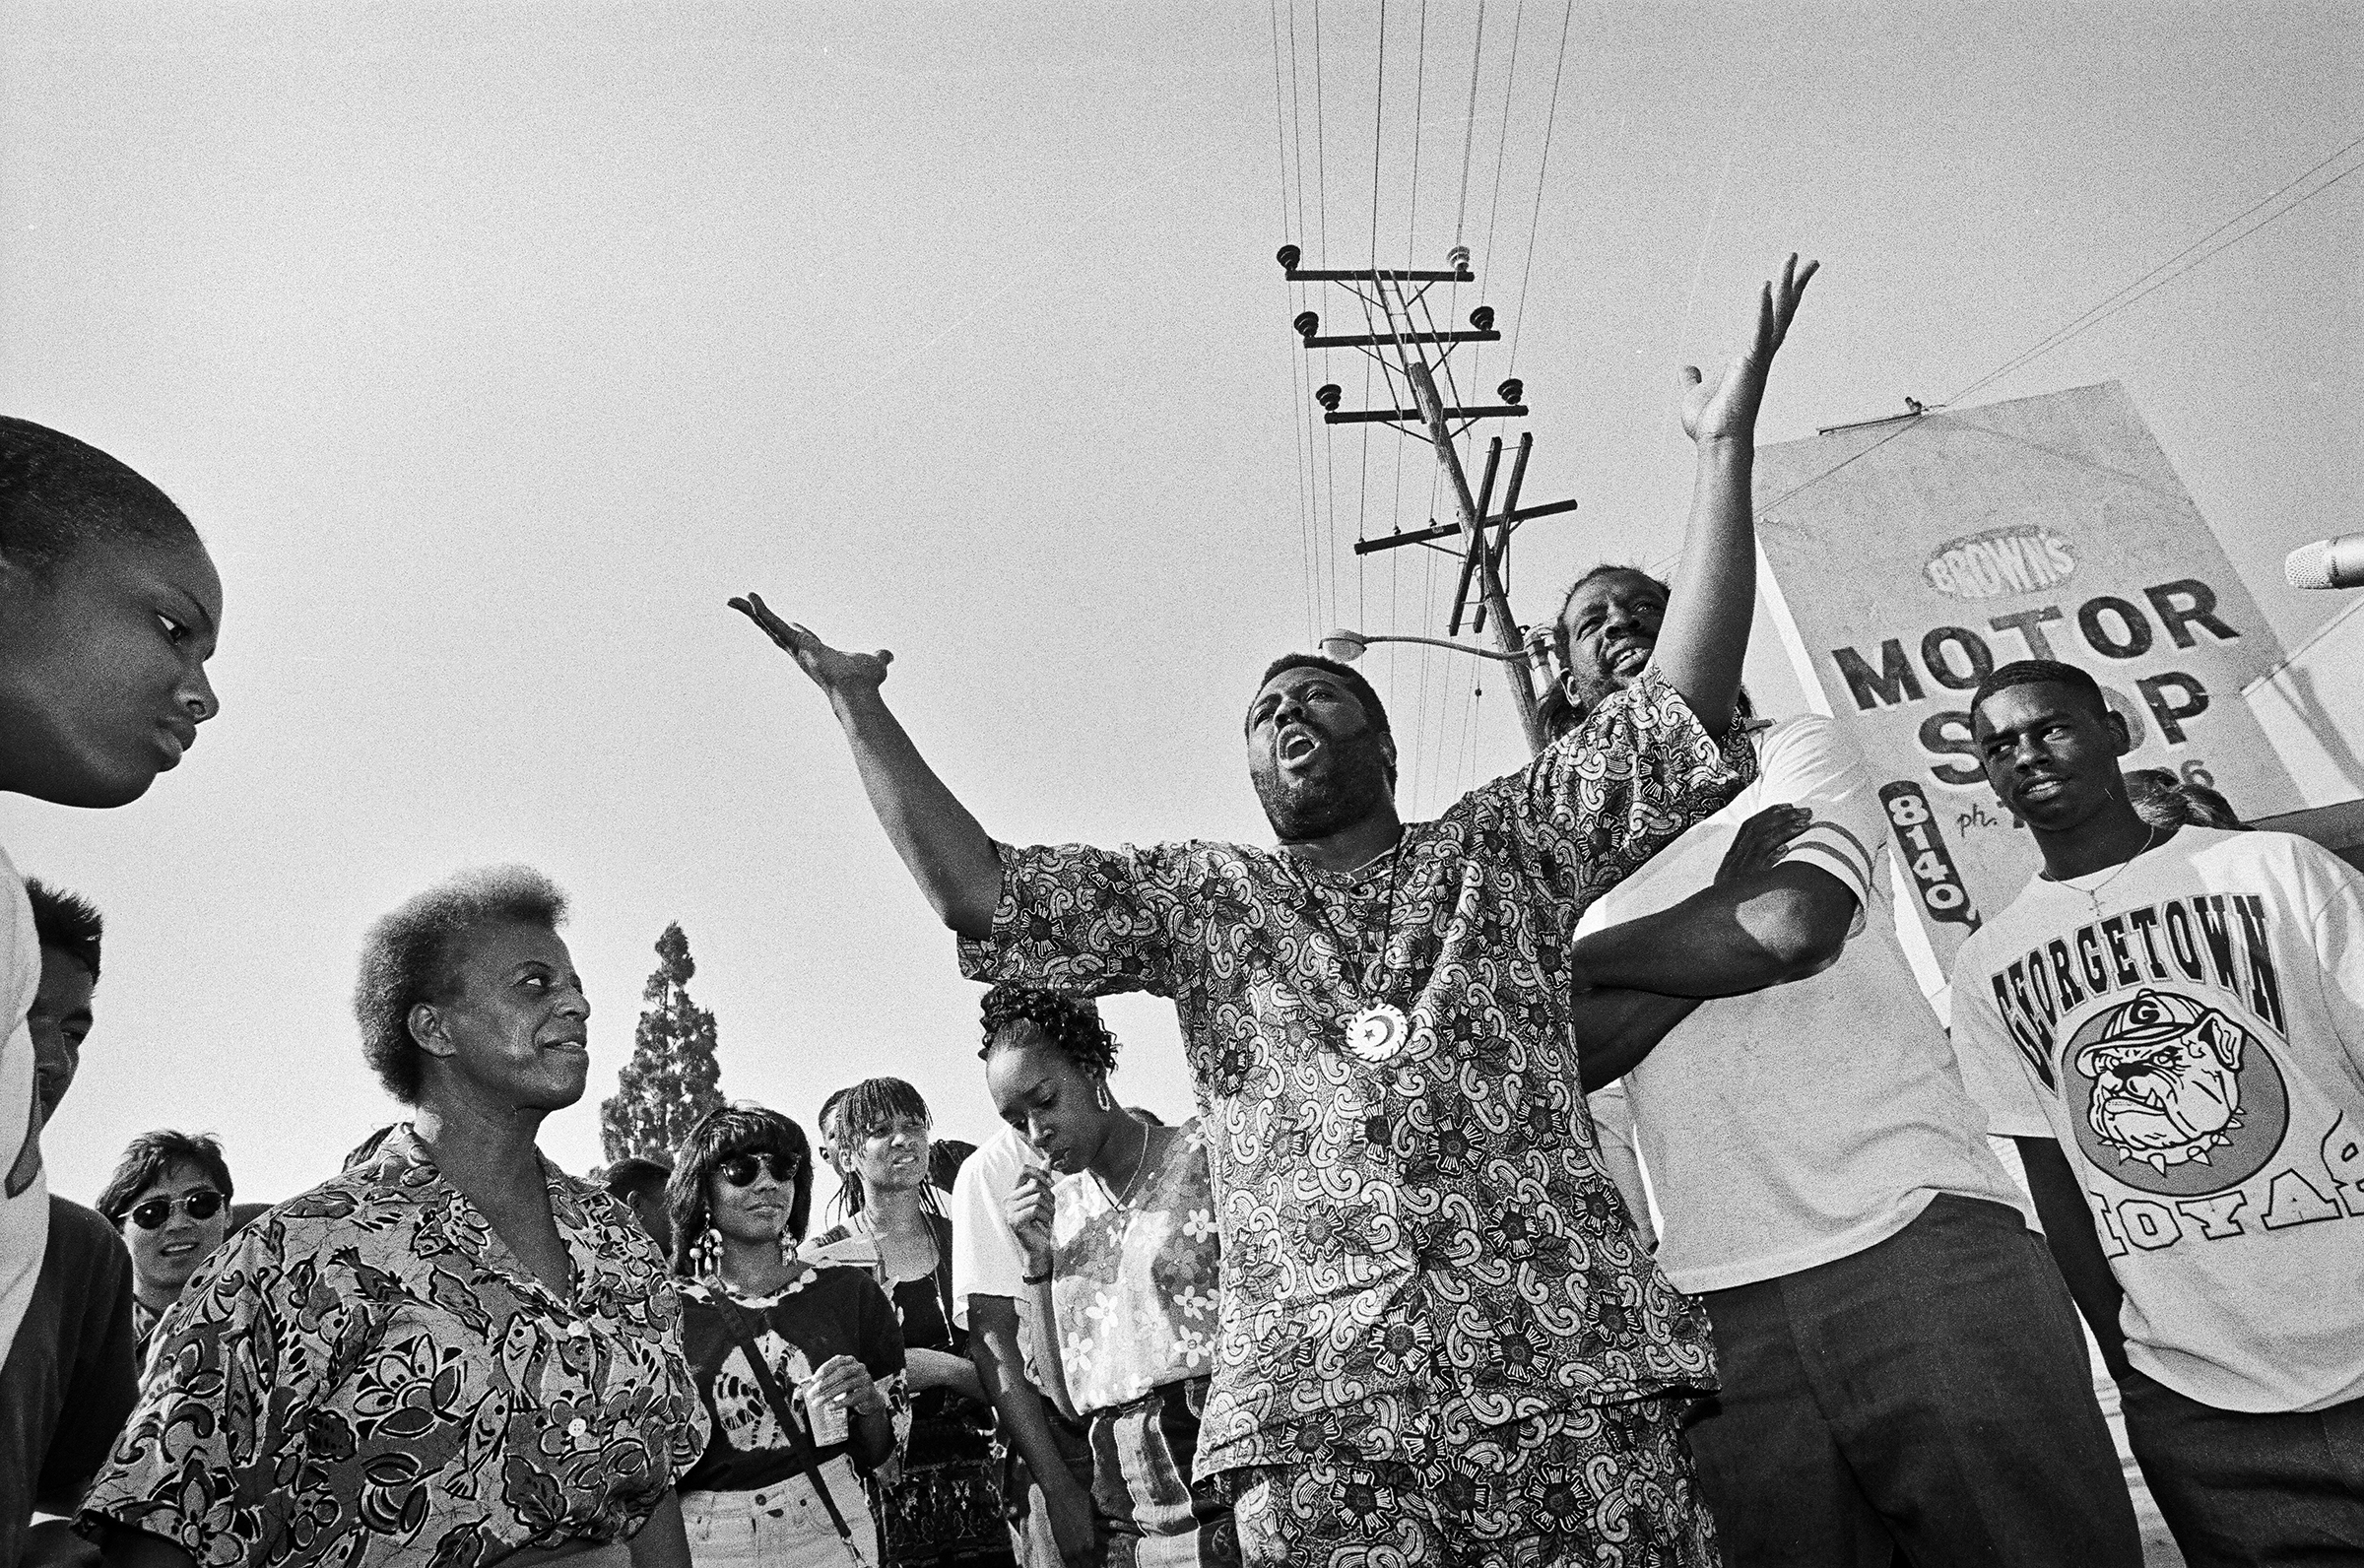 After days of rioting, South Central residents gather to ask their fellow residents to stop the violence.